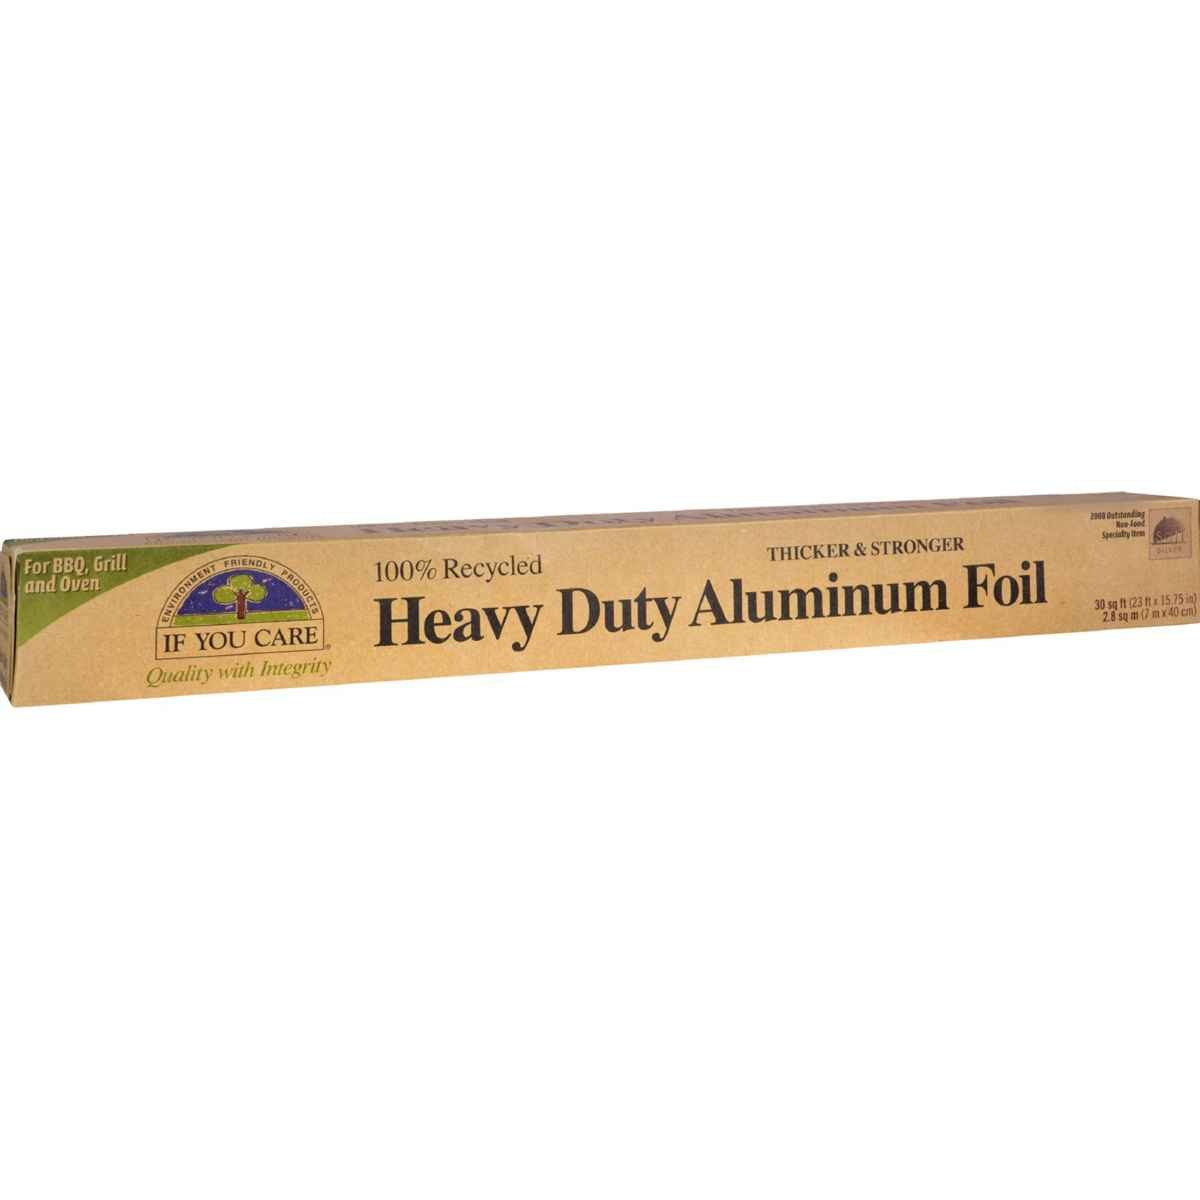 Aluminium Foil (Heavy Duty), If You Care